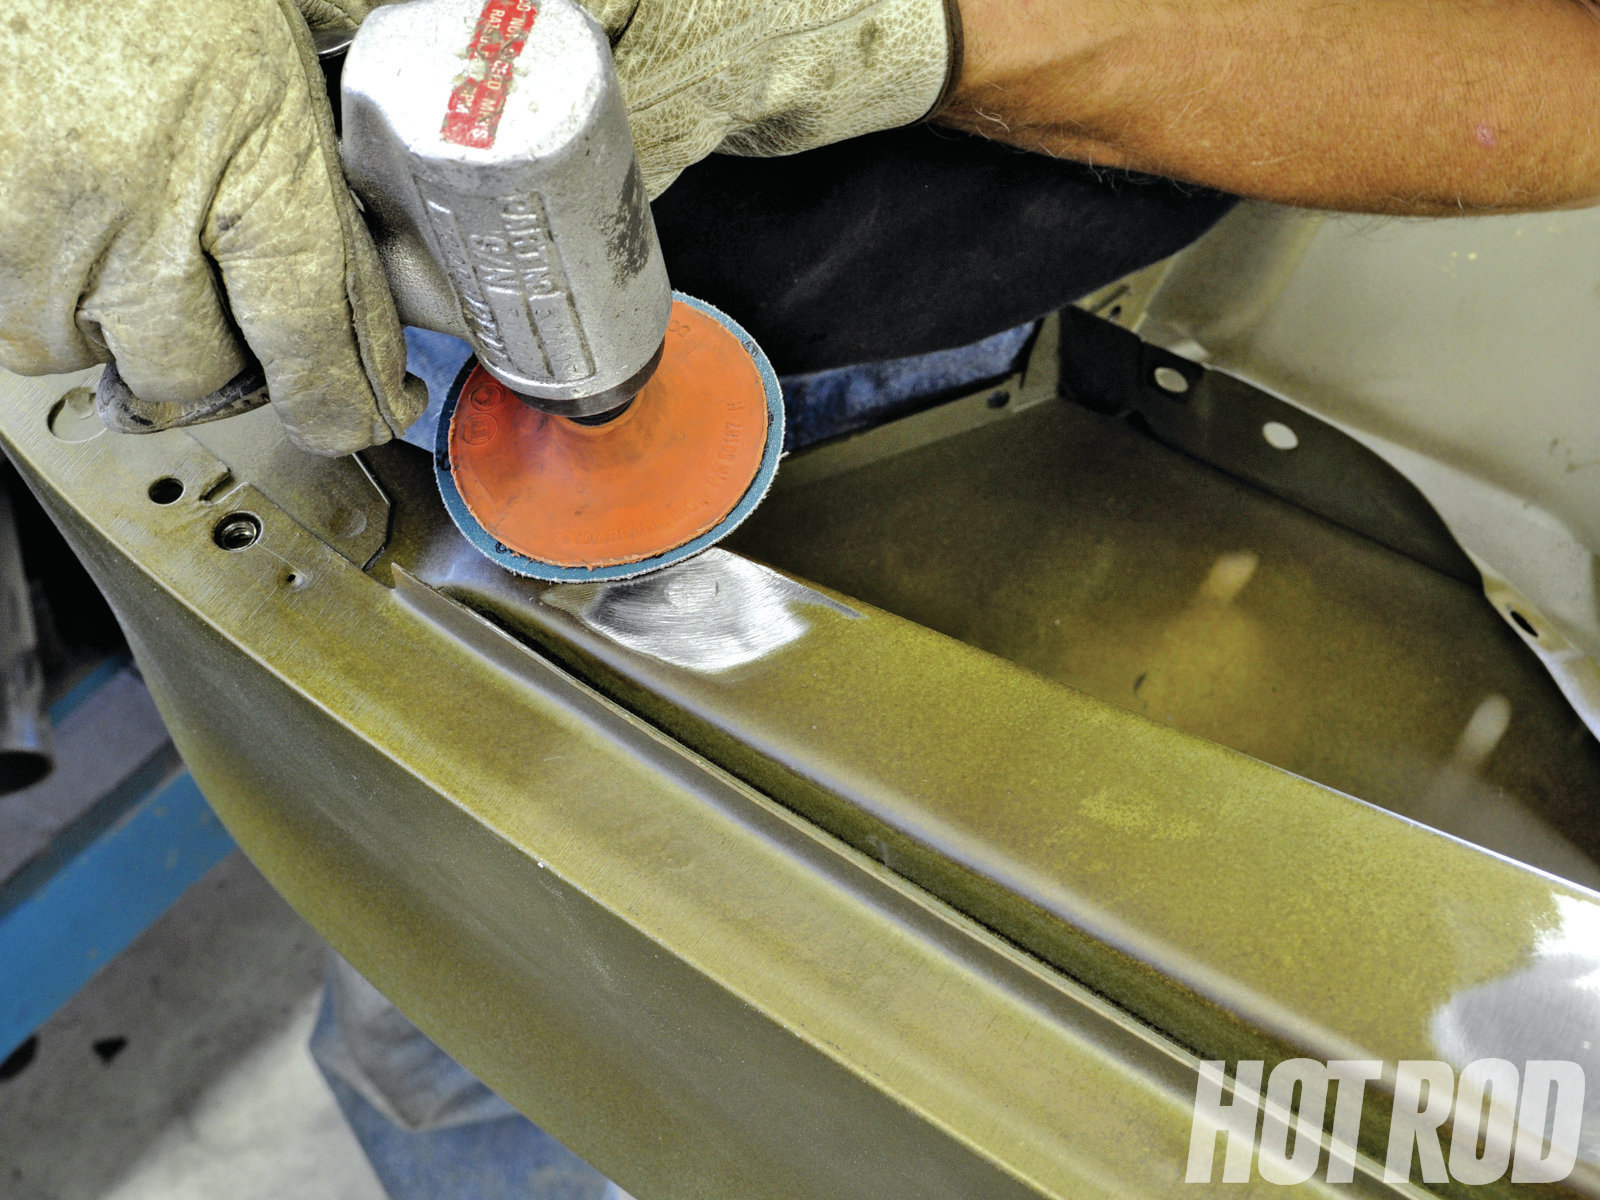 Use an abrasive disc to grind the excess metal away from the weld. Most of the time, you won't need any body filler if the weld was clean; a couple of coats of high-build primer will fill in the minor imperfections and no one will ever know there was a hole there.